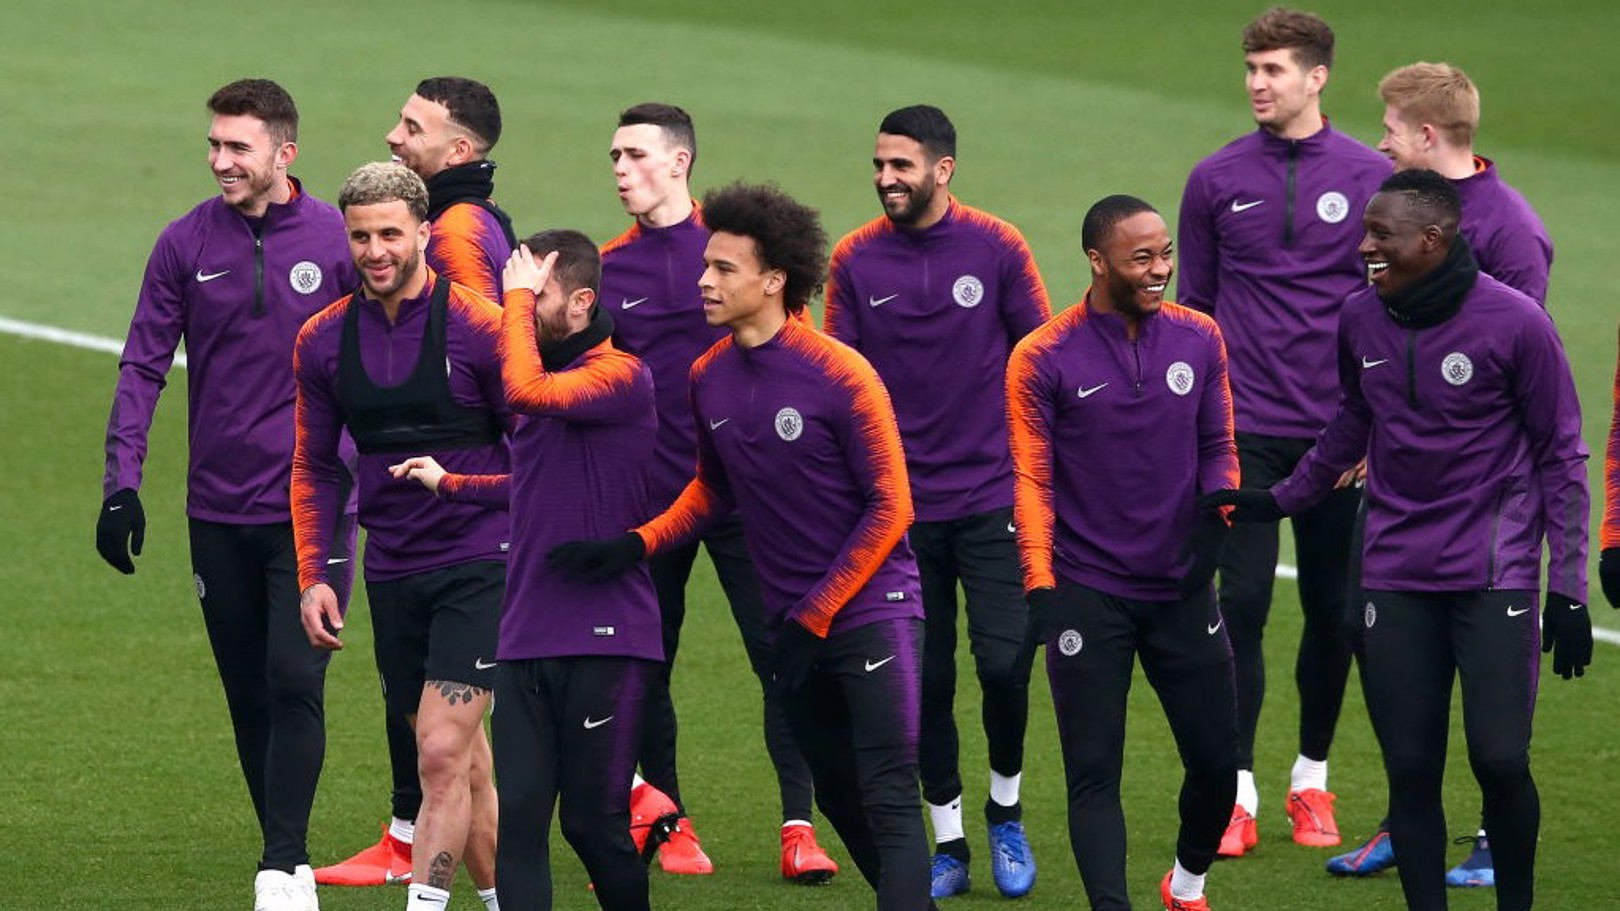 NEW: The Premier League has introduced a mid-season break for the 2019/20 campaign.